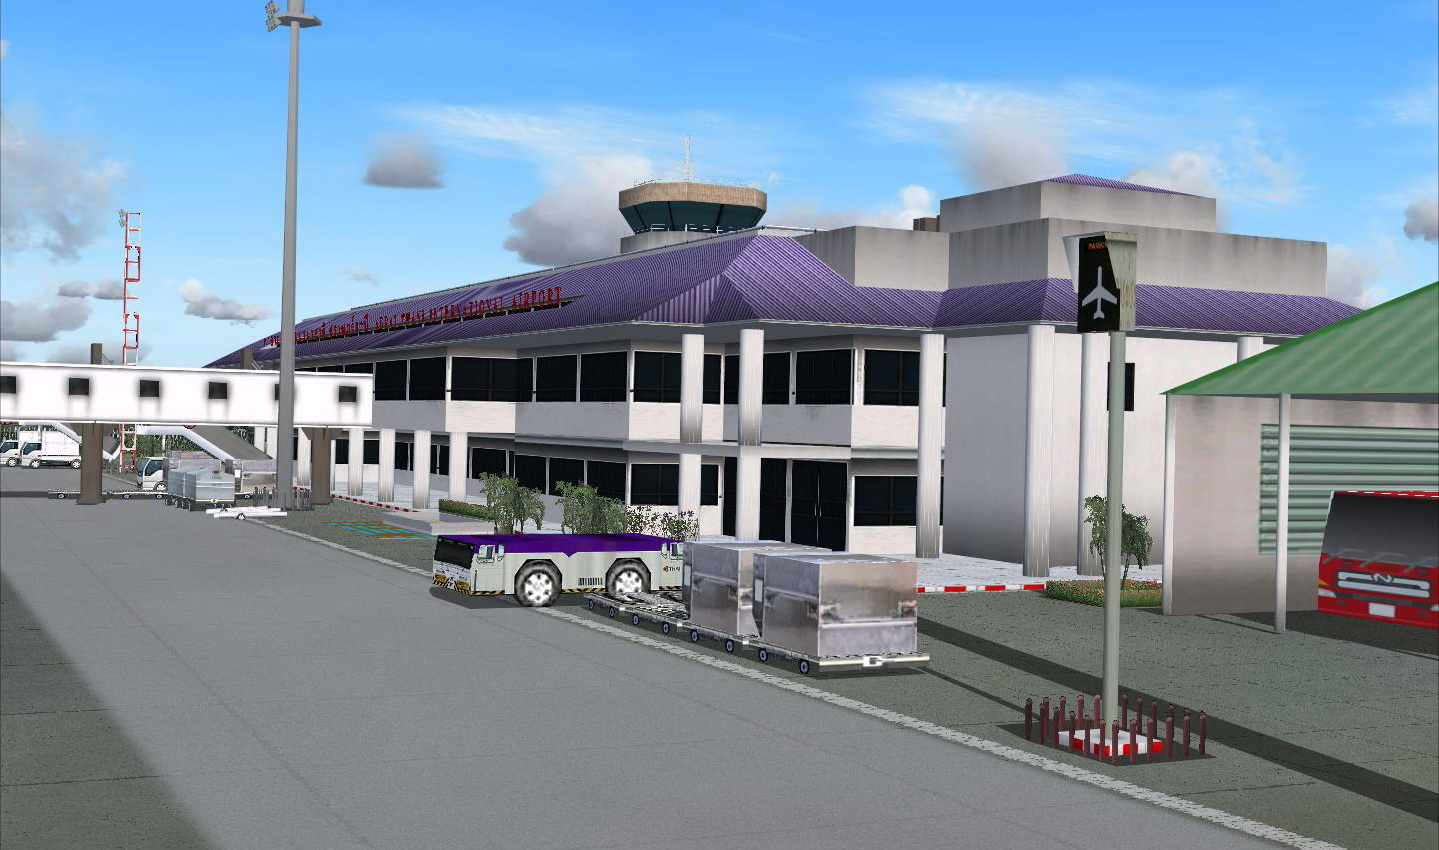 ONET VALLEY - SURAT THANI INTERNATIONAL AIRPORT FS2004